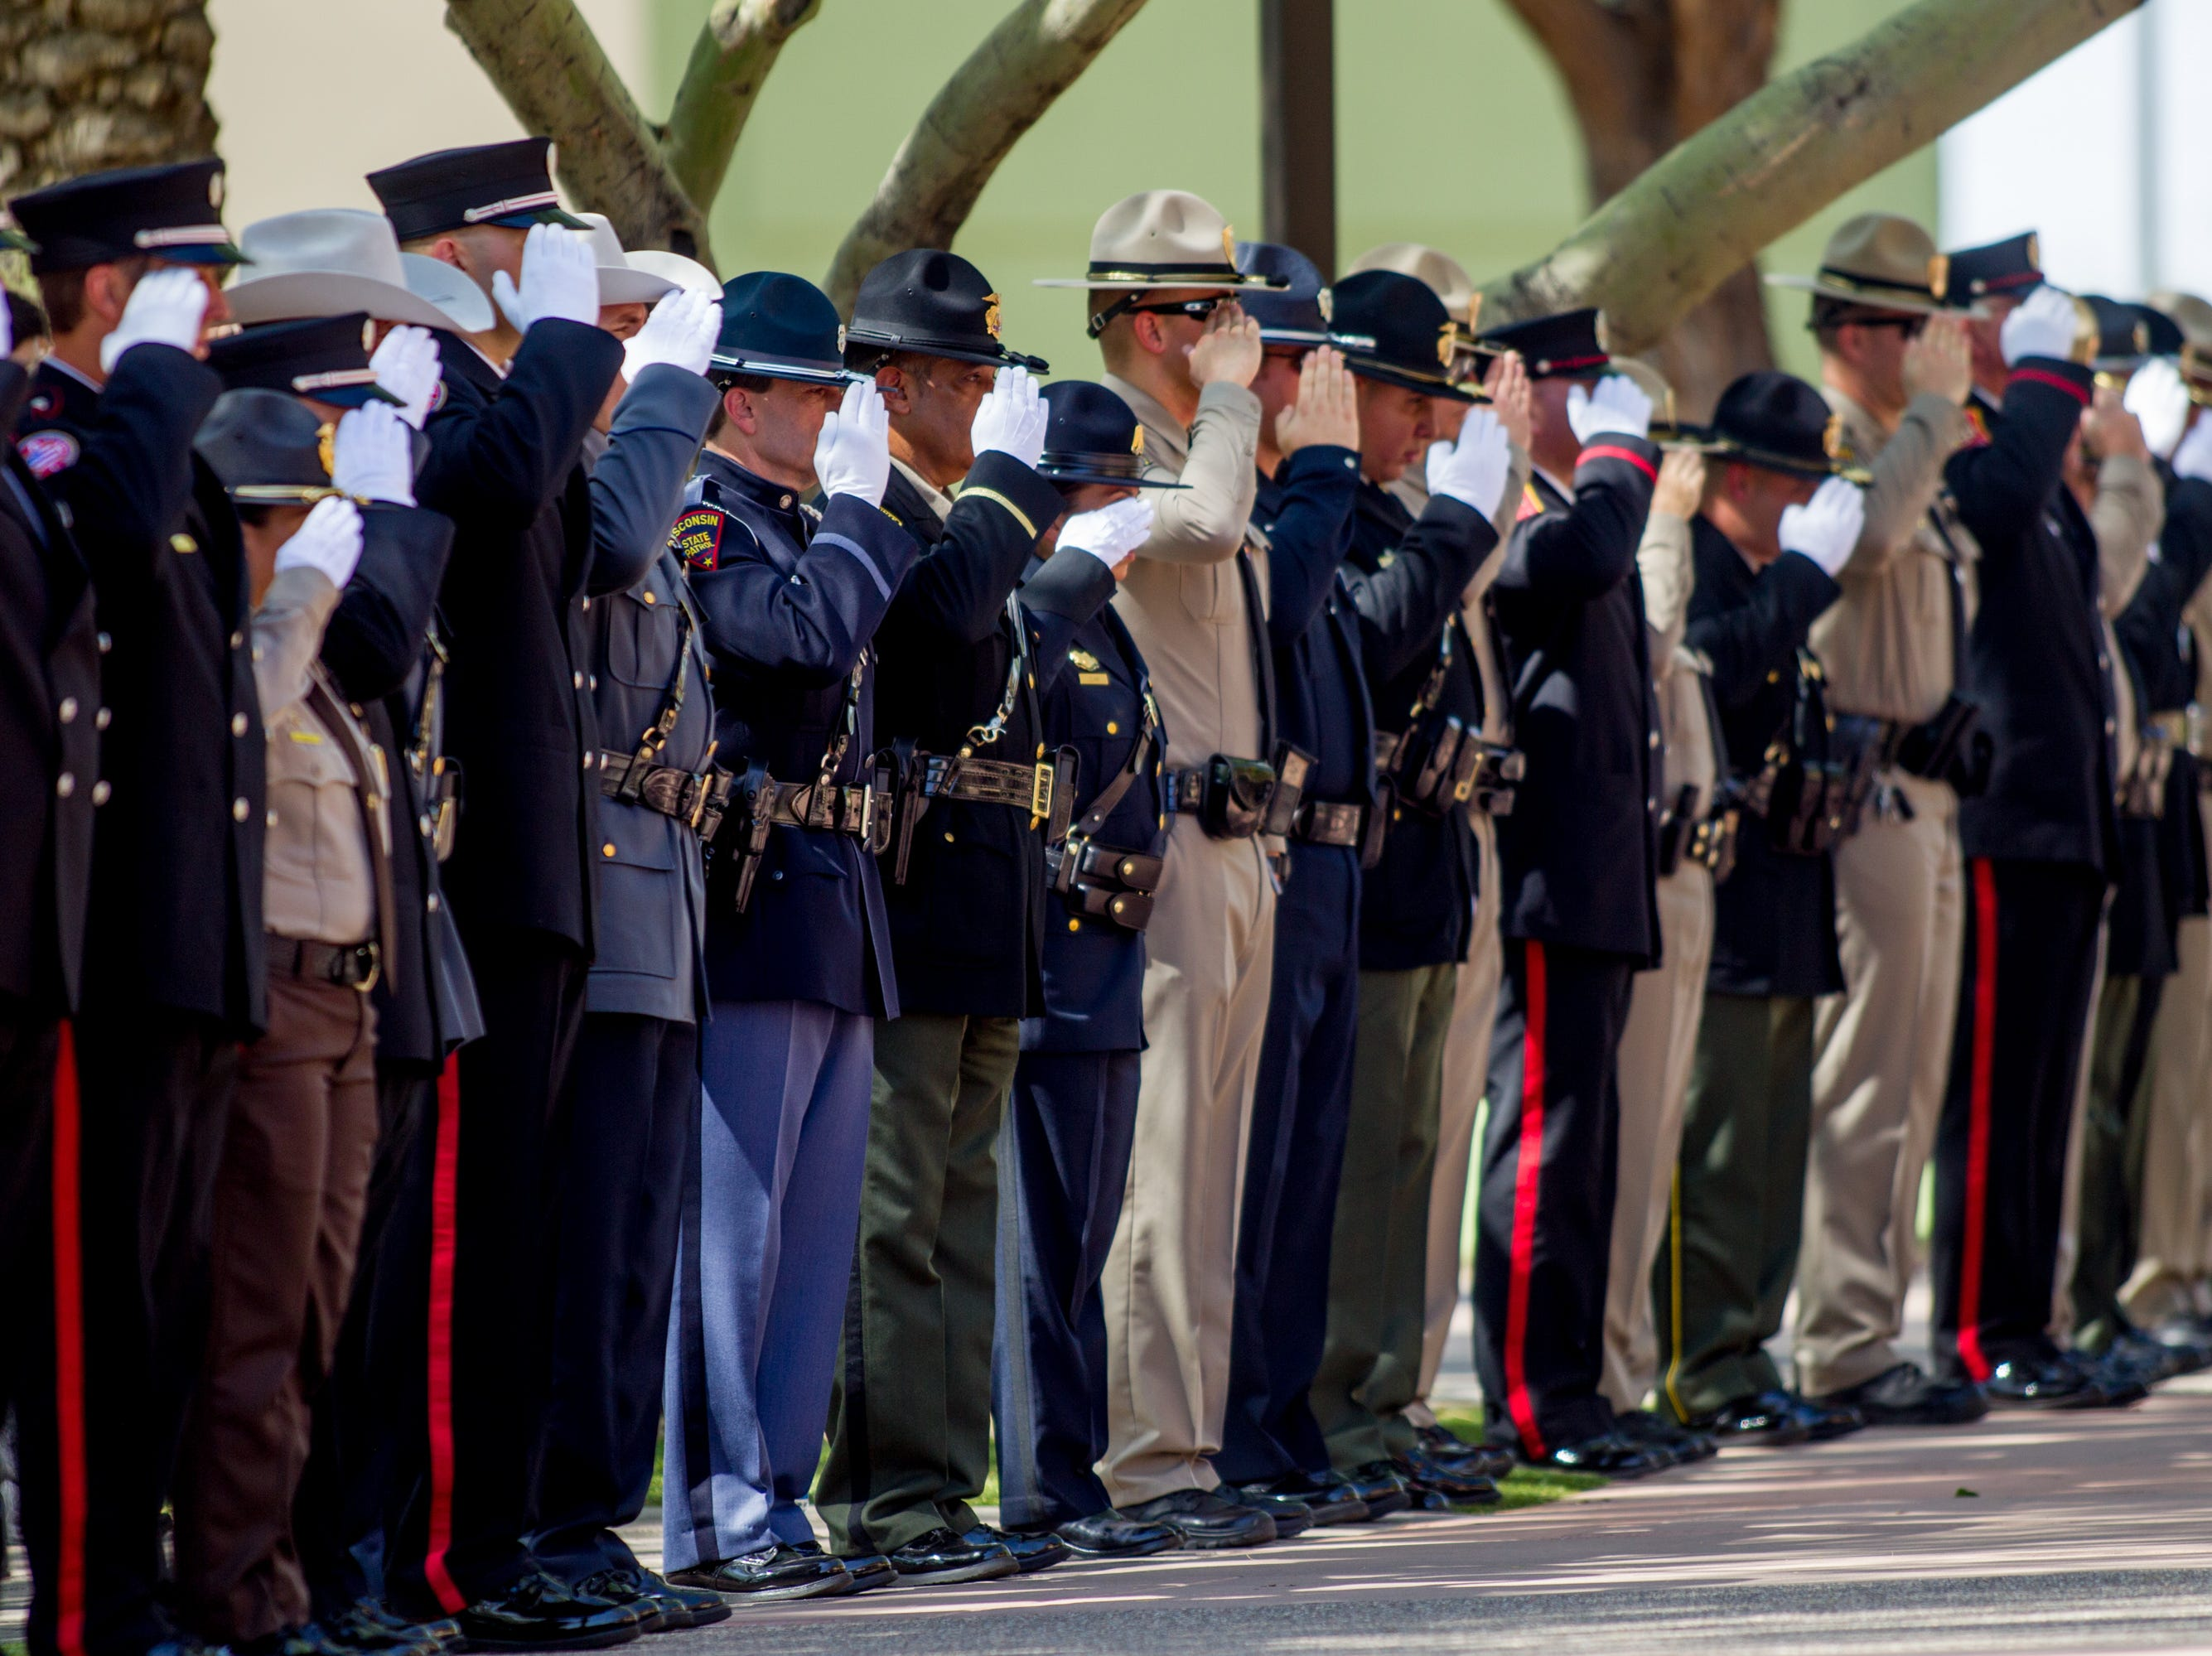 Law-enforcement and emergency personnel salute during the processional for fallen DPS Trooper Tyler Edenhofer's funeral on Aug. 3, 2018, at Christ's Church of the Valley in Peoria.